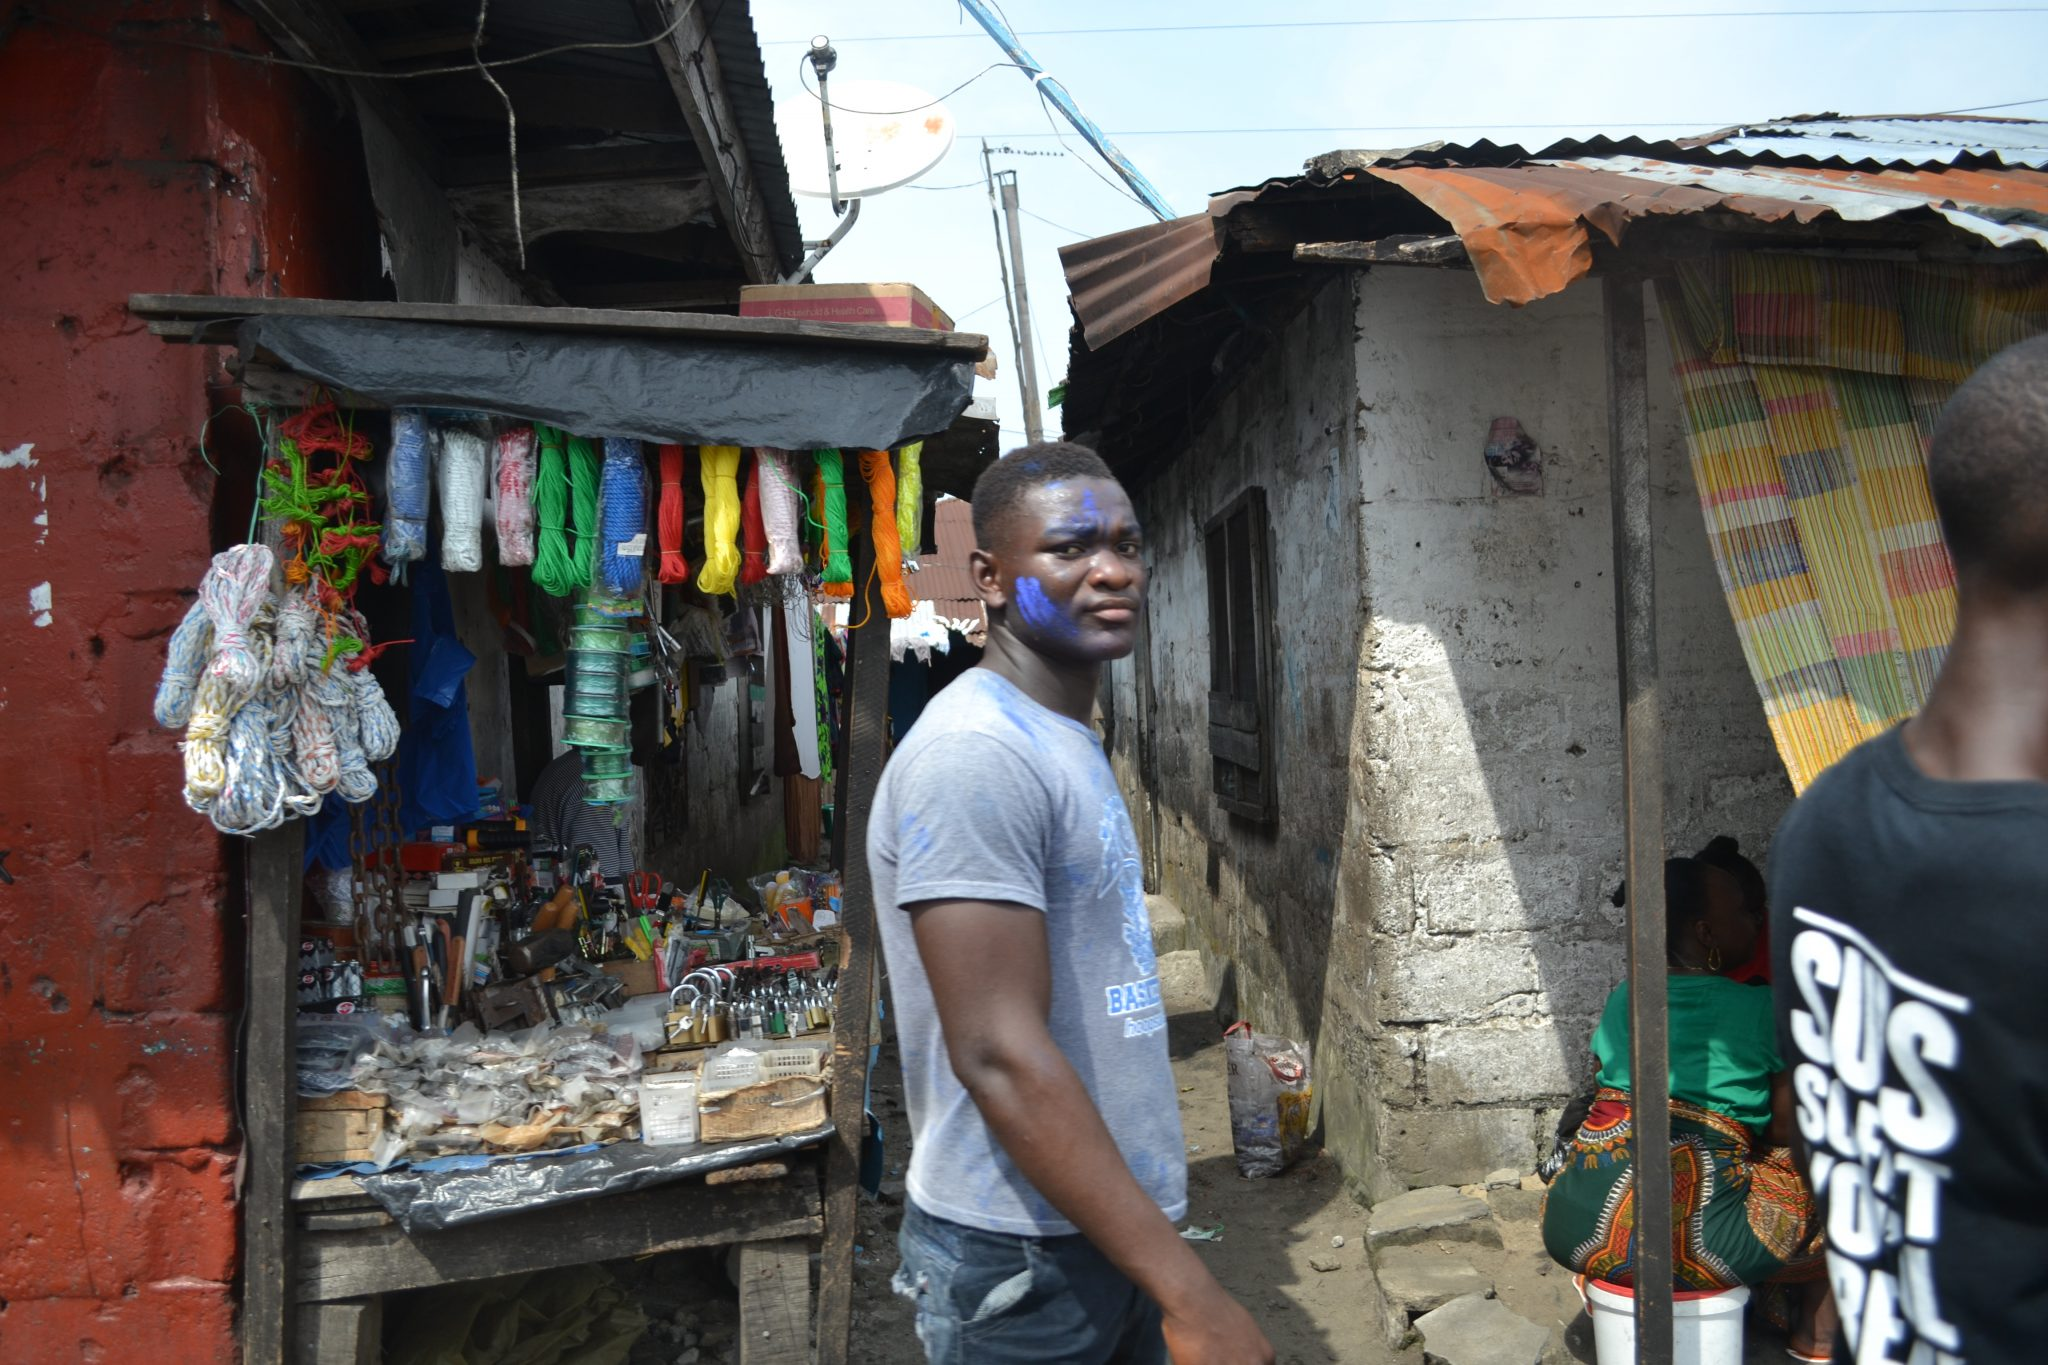 Street in West Point, one of Monrovia's largest slum communities. Photo: Anna-Carin Hall / Kvinna till Kvinna